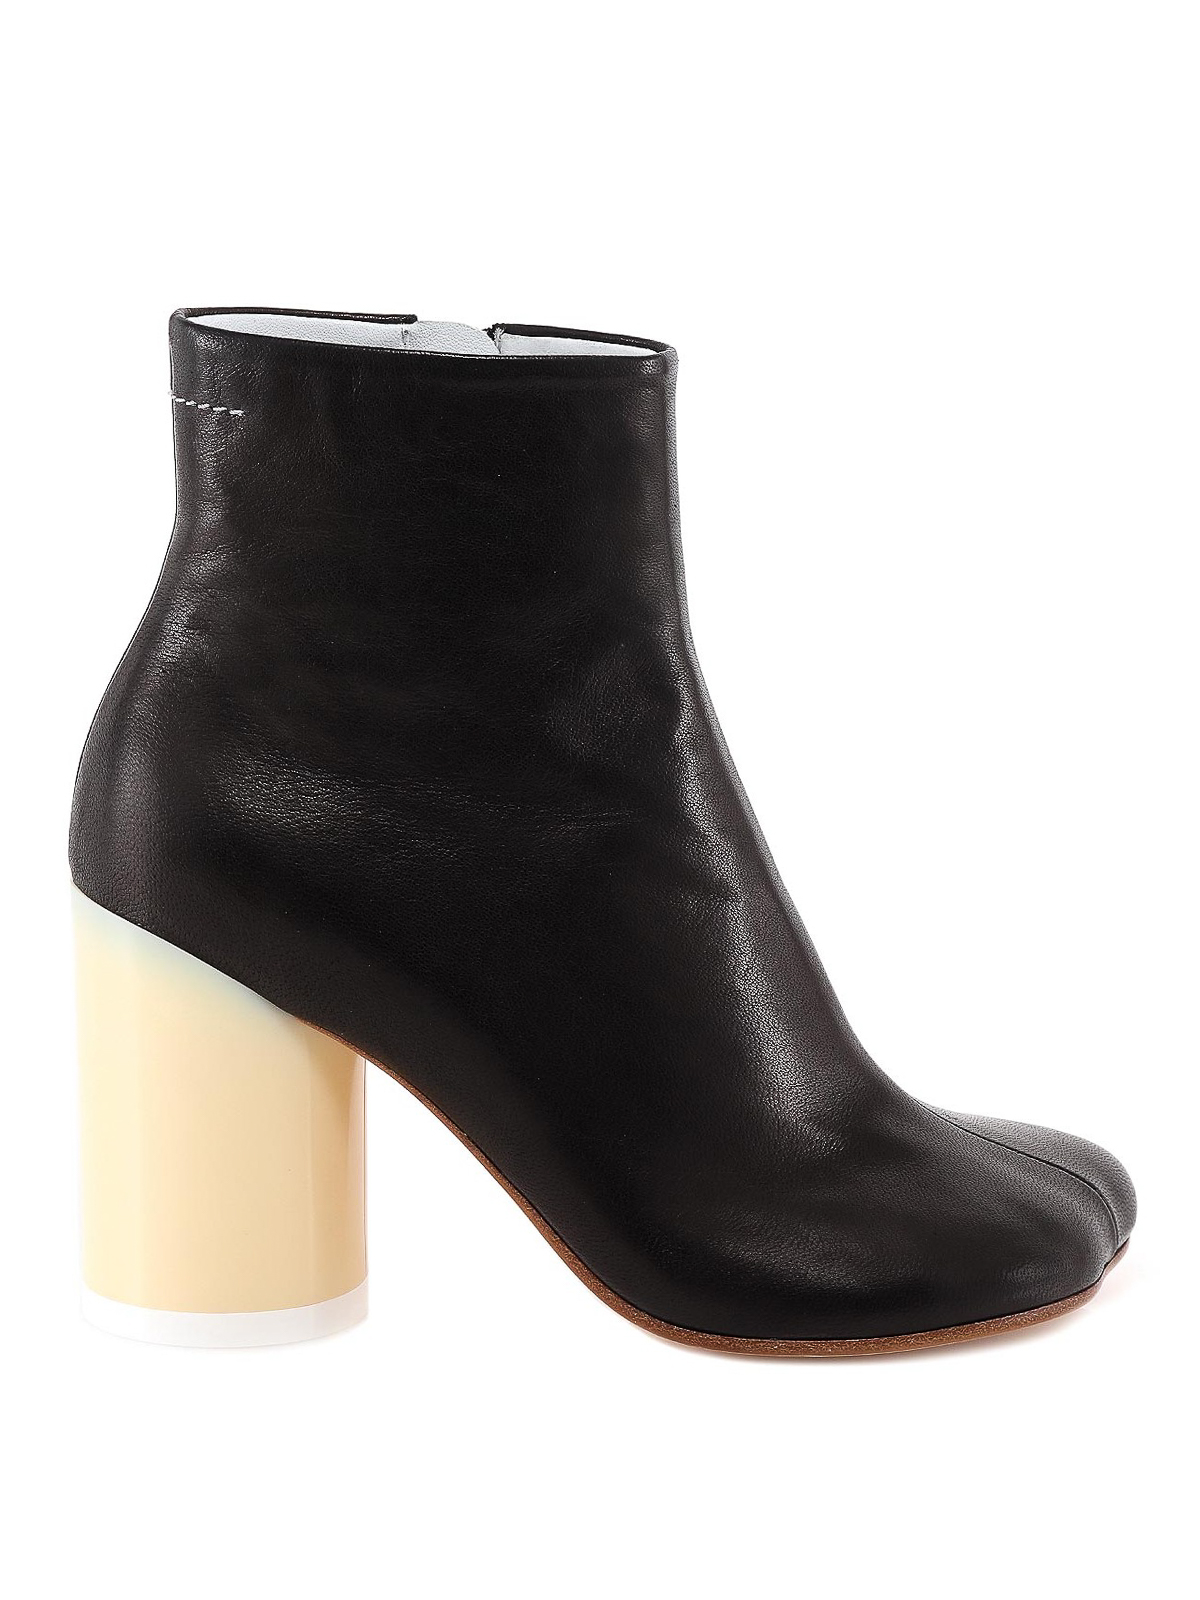 Mm6 Maison Margiela TWO-TONE ANKLE BOOTS